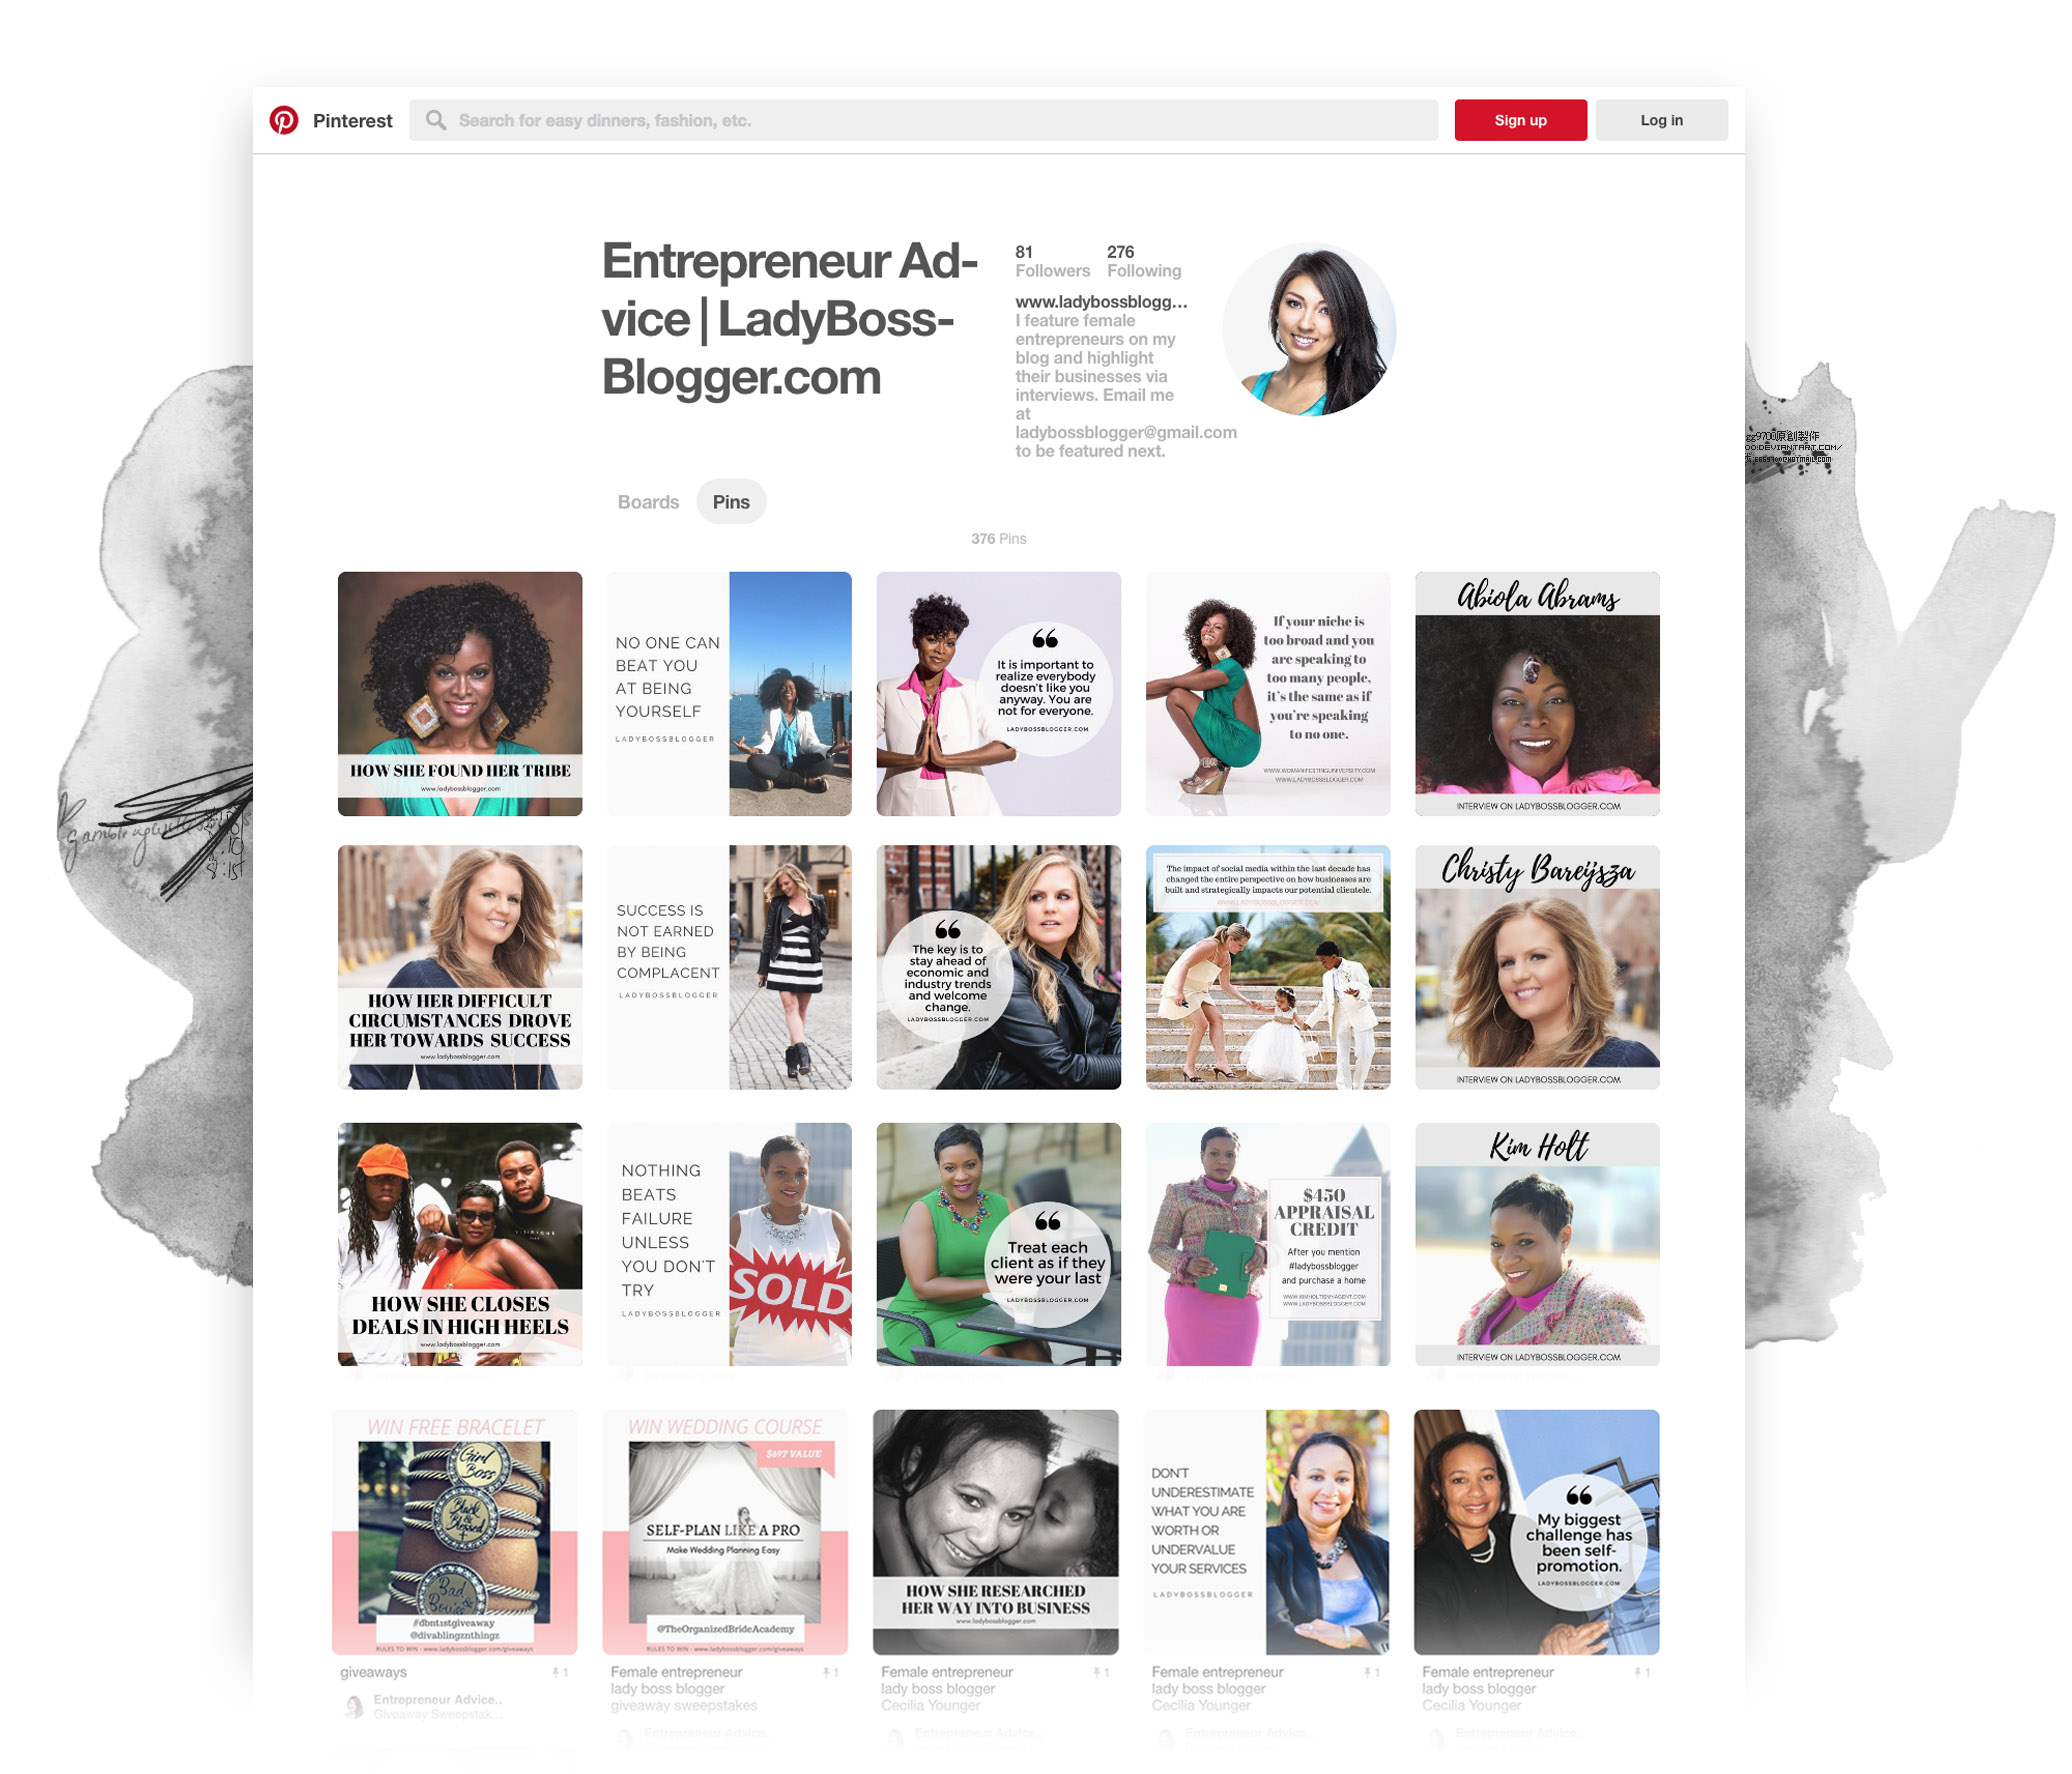 LadyBossBlogger Pinterest page strategy